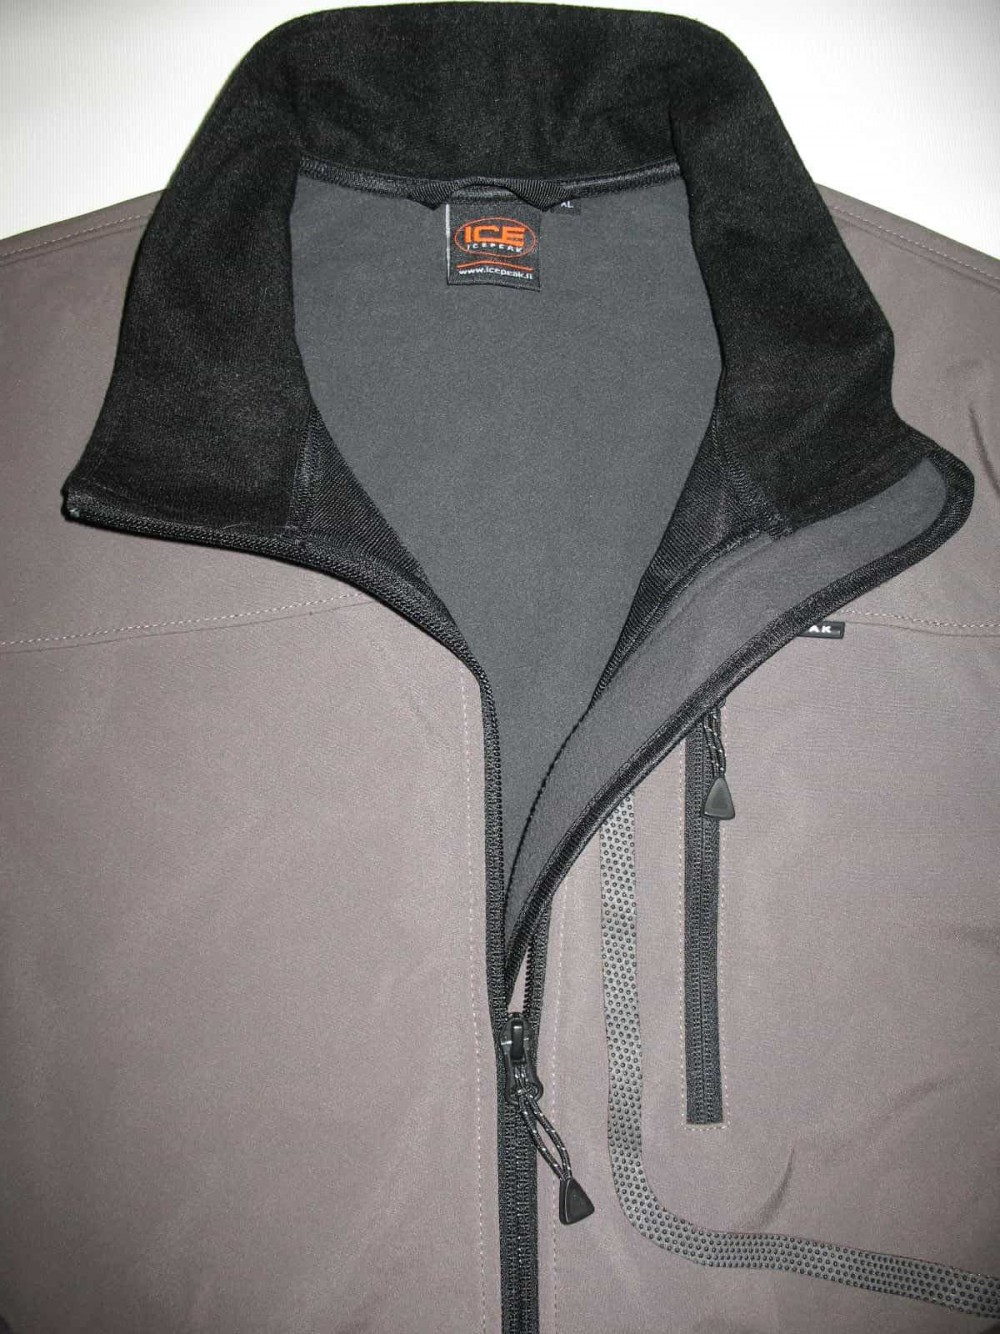 Куртка ICEPEAK softshell jacket (размер XL) - 3